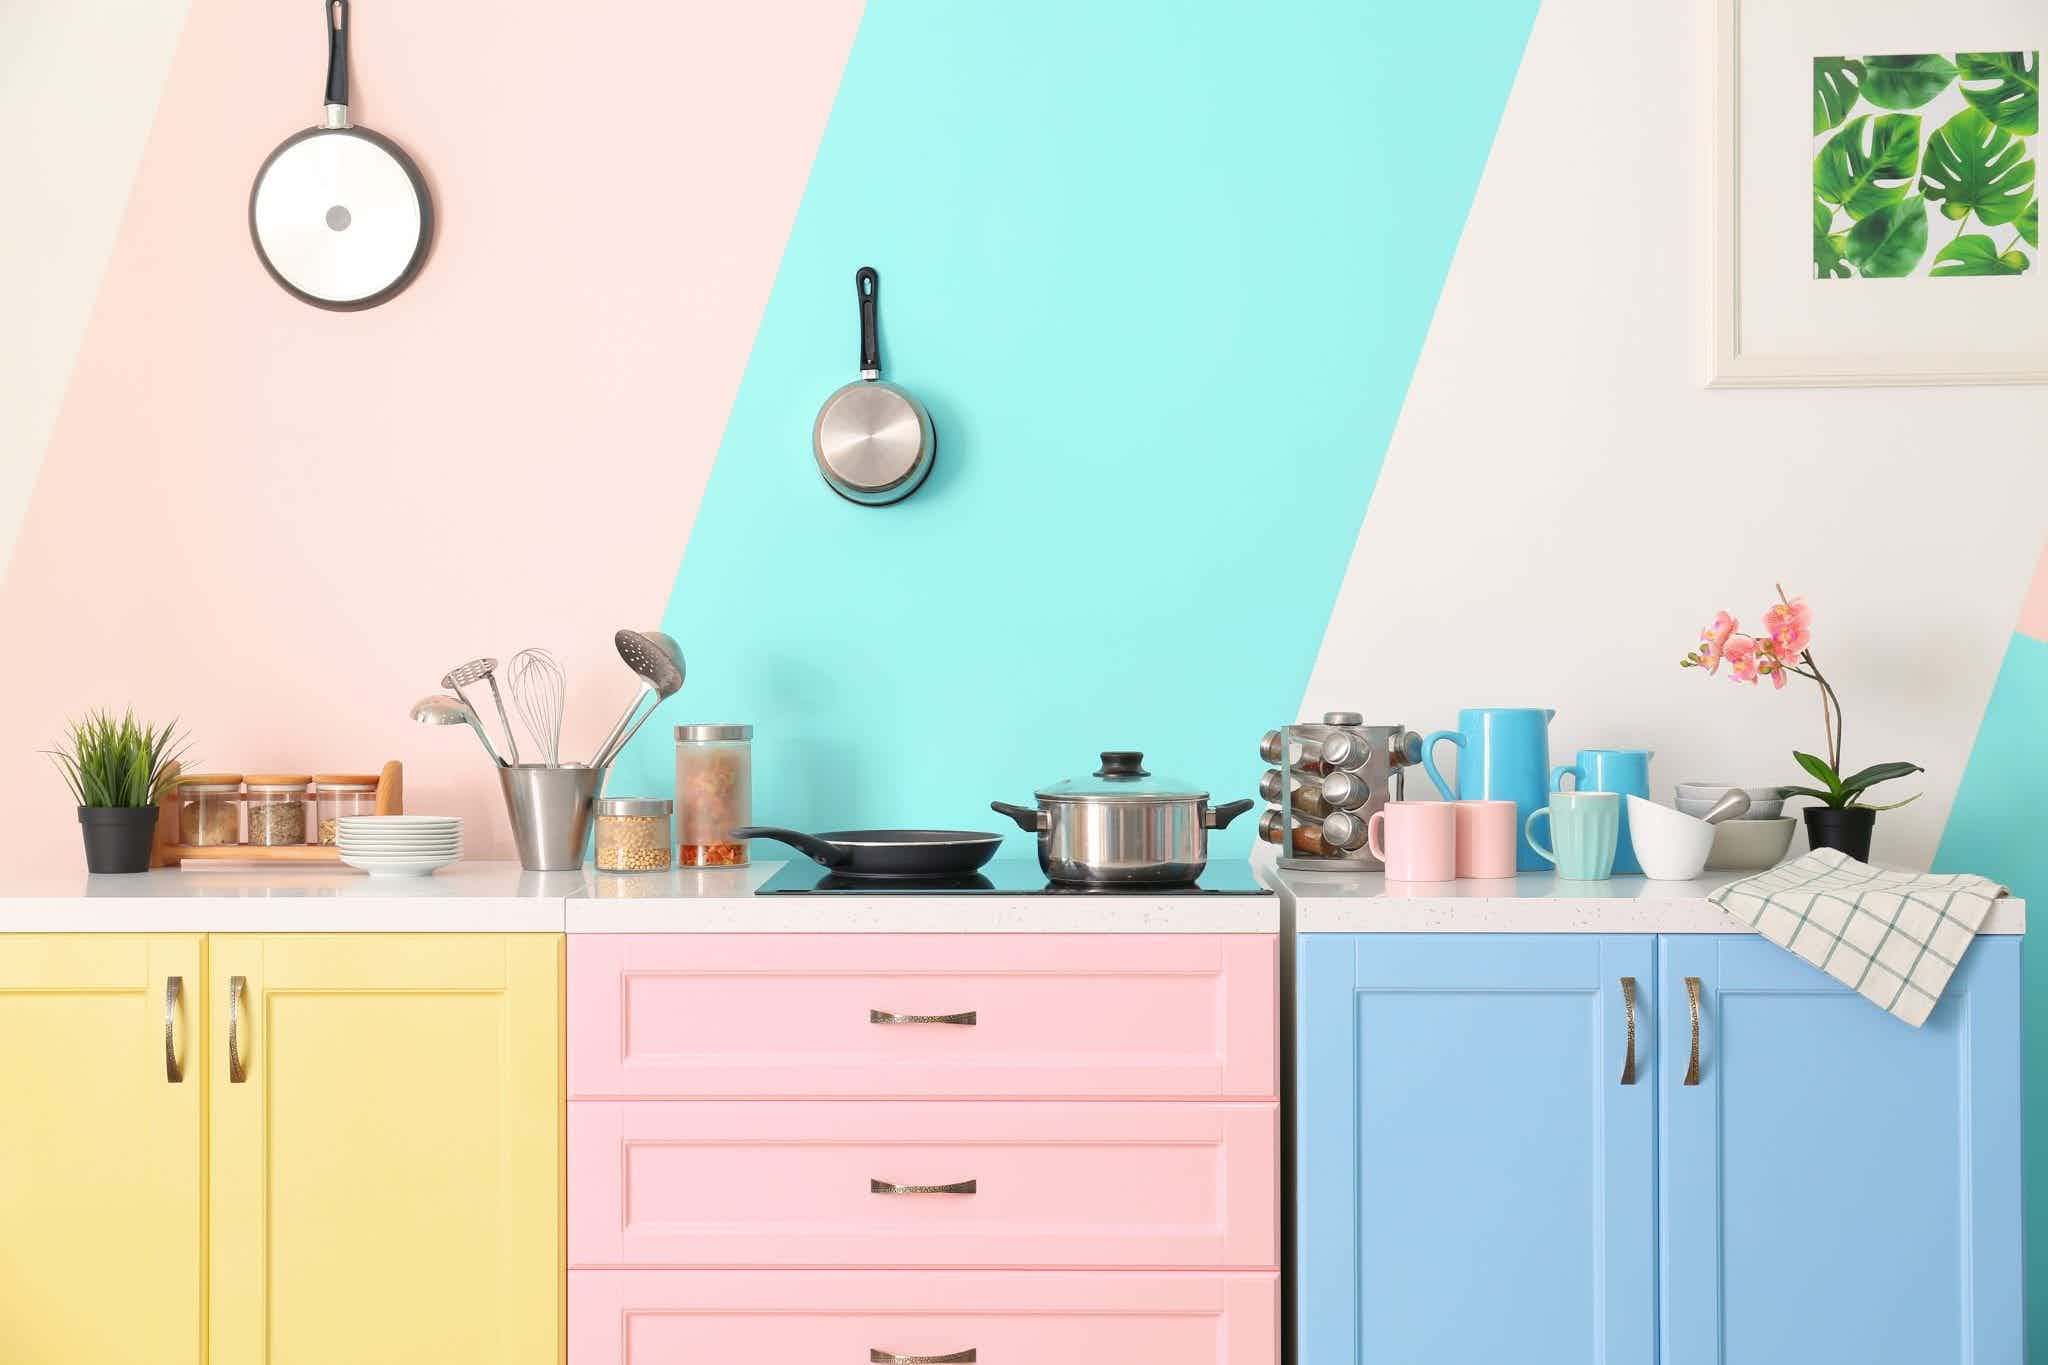 Yellow, pink, and blue kitchen cabinets with pink and blue striped walls. (Hint: the best kitchen paint colors aren't any of these!)